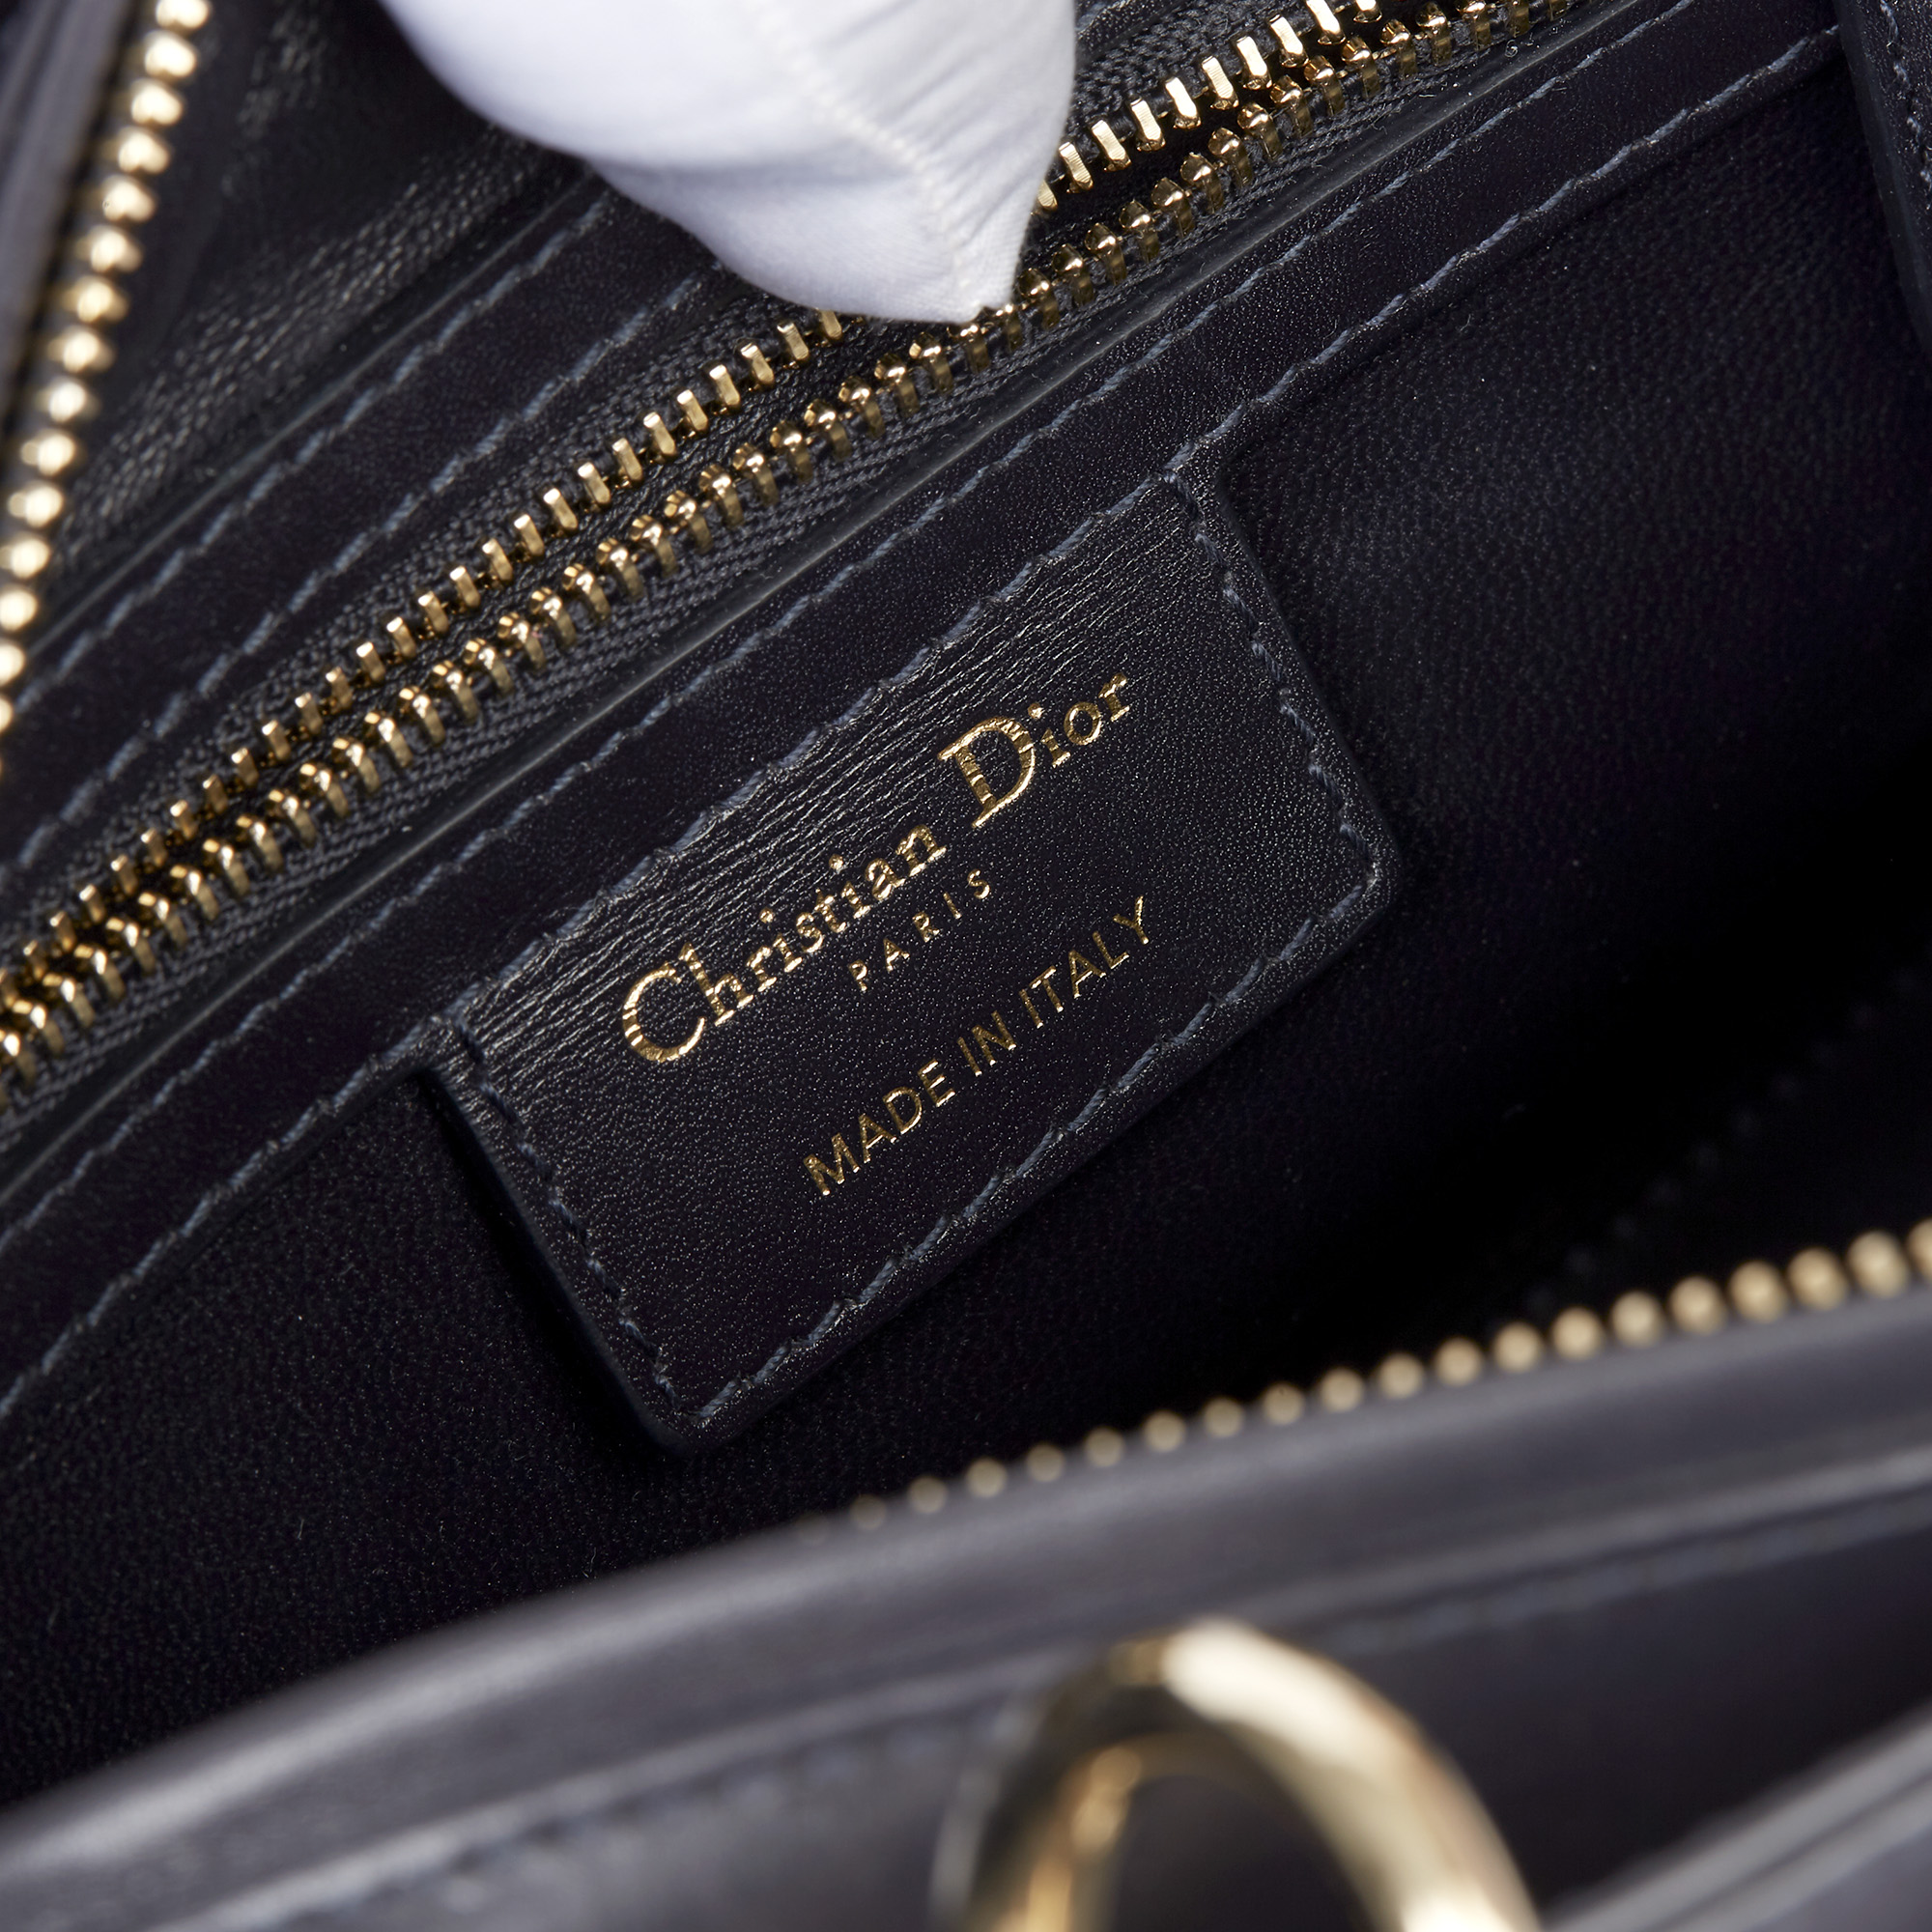 Christian Dior Navy Smooth Calfskin Leather Pocket Detail Medium Lady Dior - Image 4 of 10